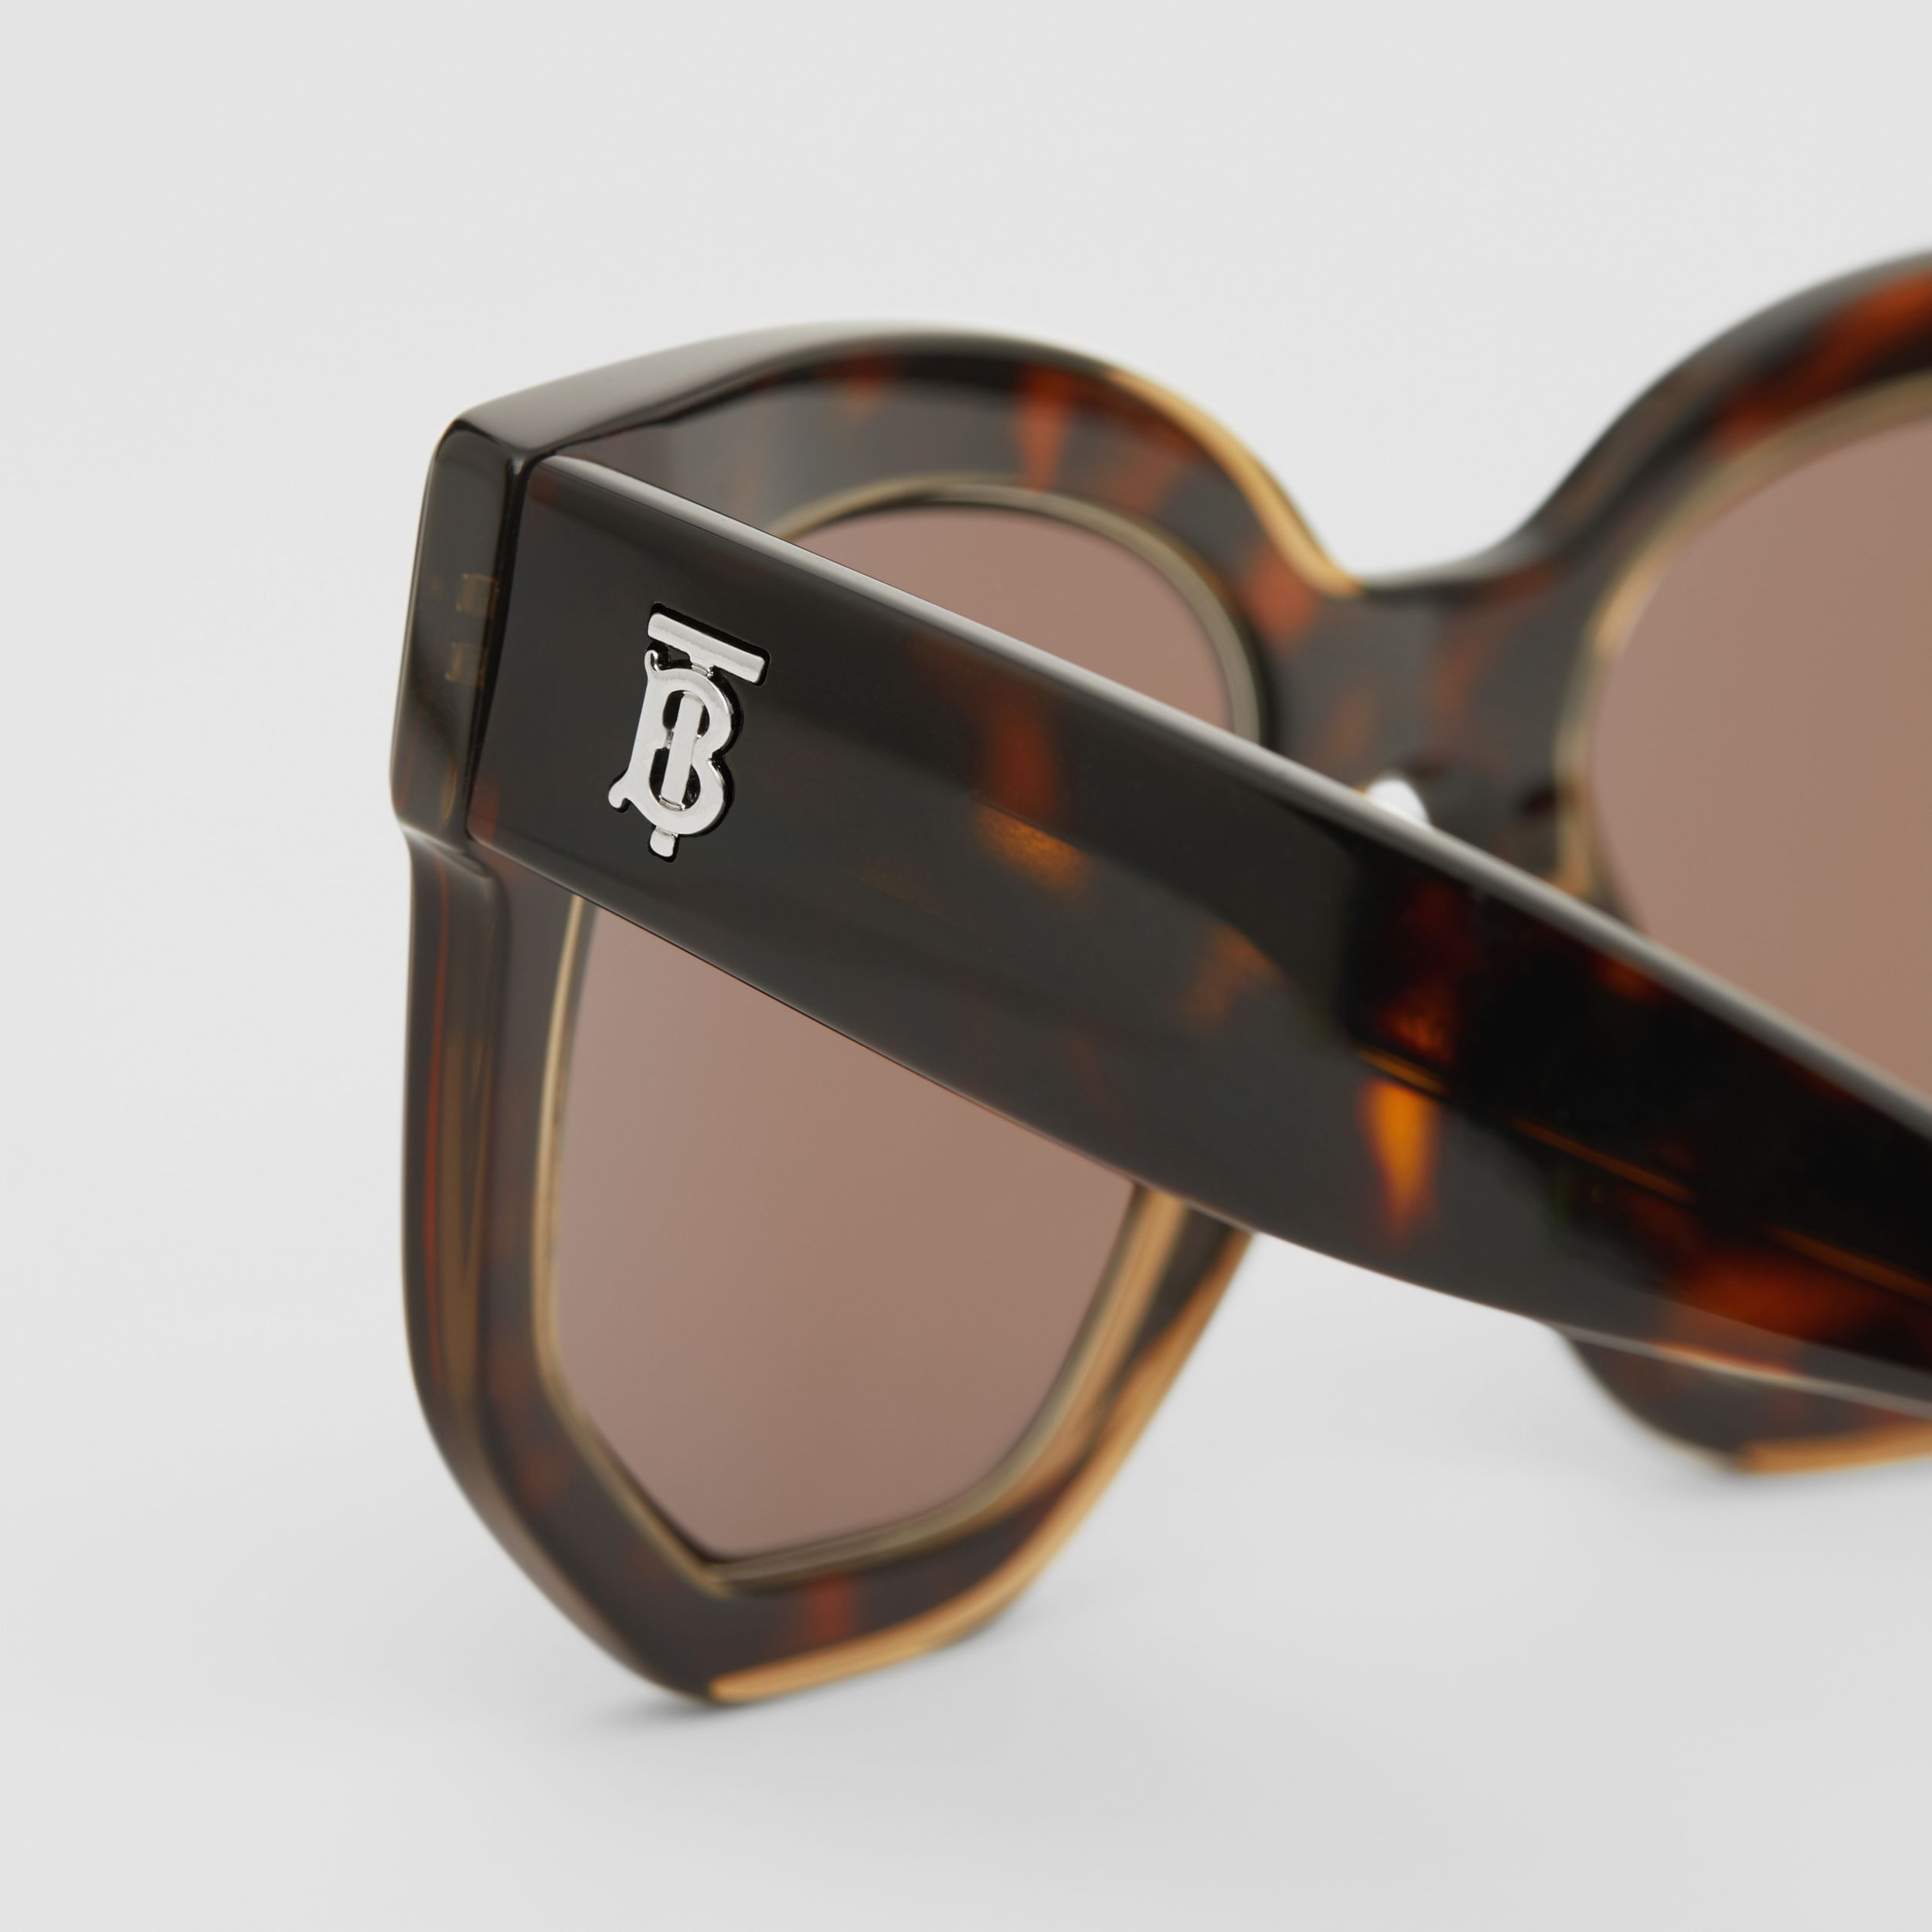 Geometric Frame Sunglasses in Tortoiseshell - Women | Burberry Canada - 2